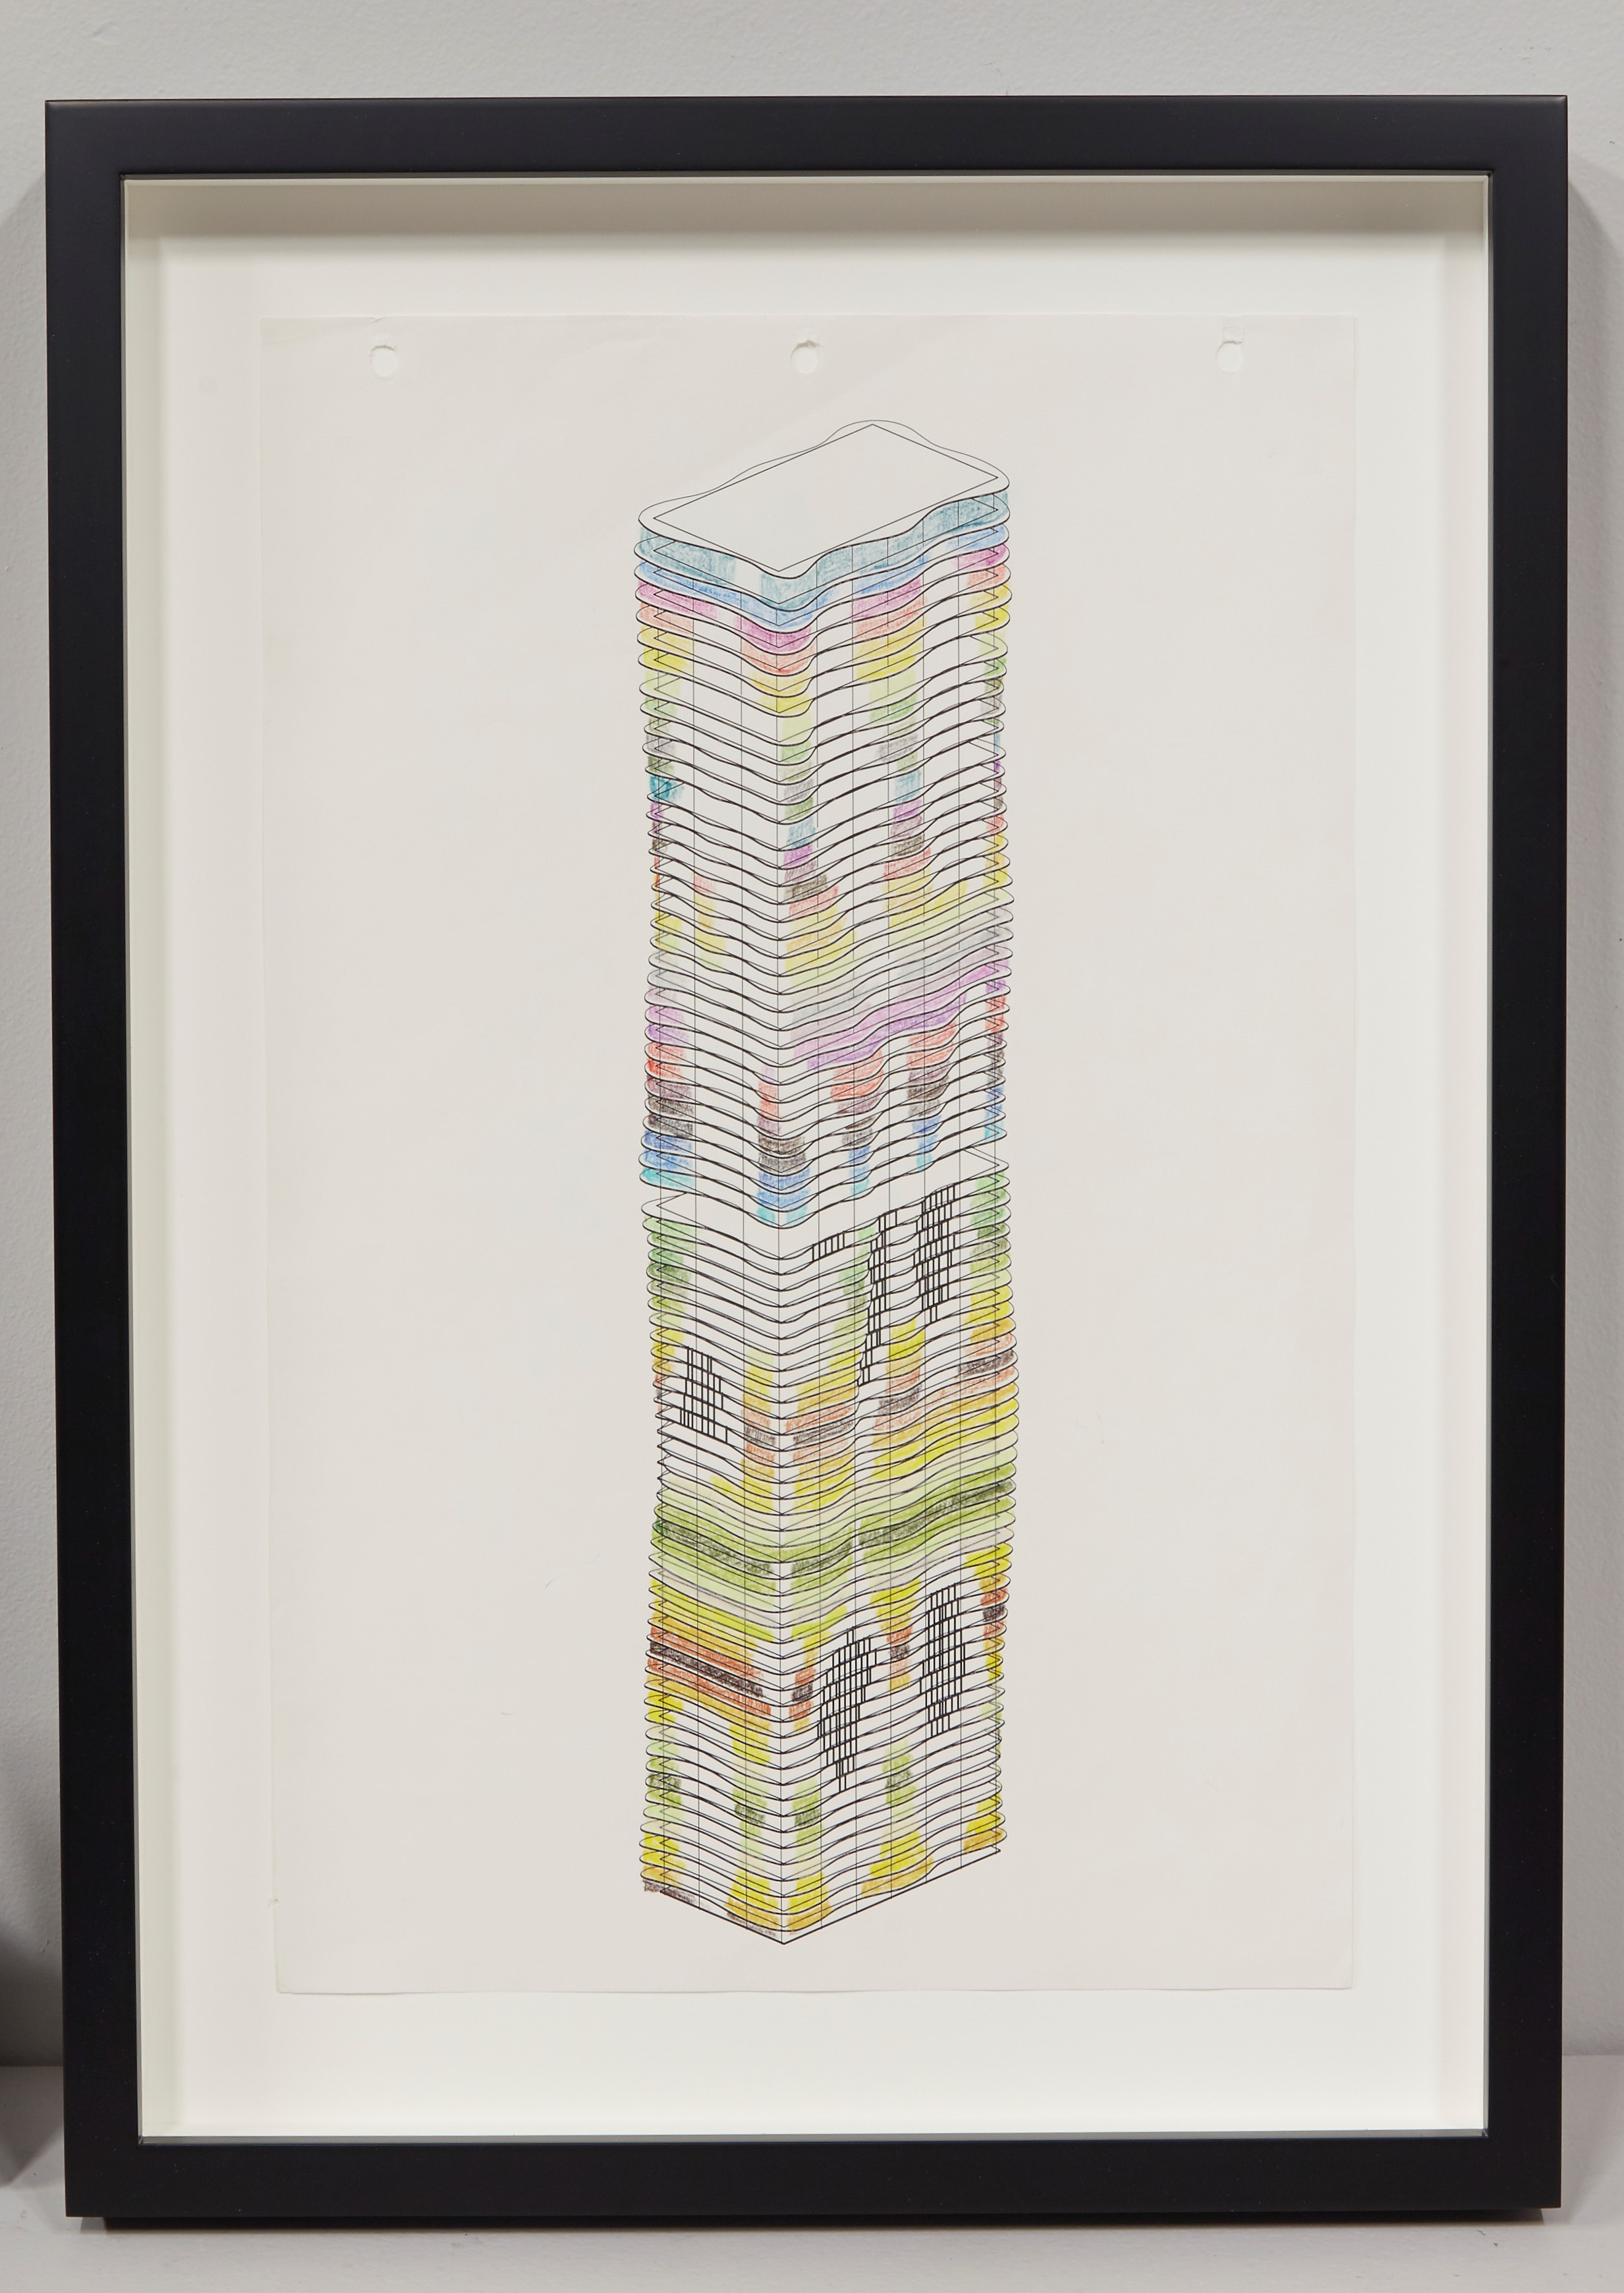 Studio Gang , a Chicago architecture firm, had their drawings custom framed for showing at  EXPO Chicago  in 2016.